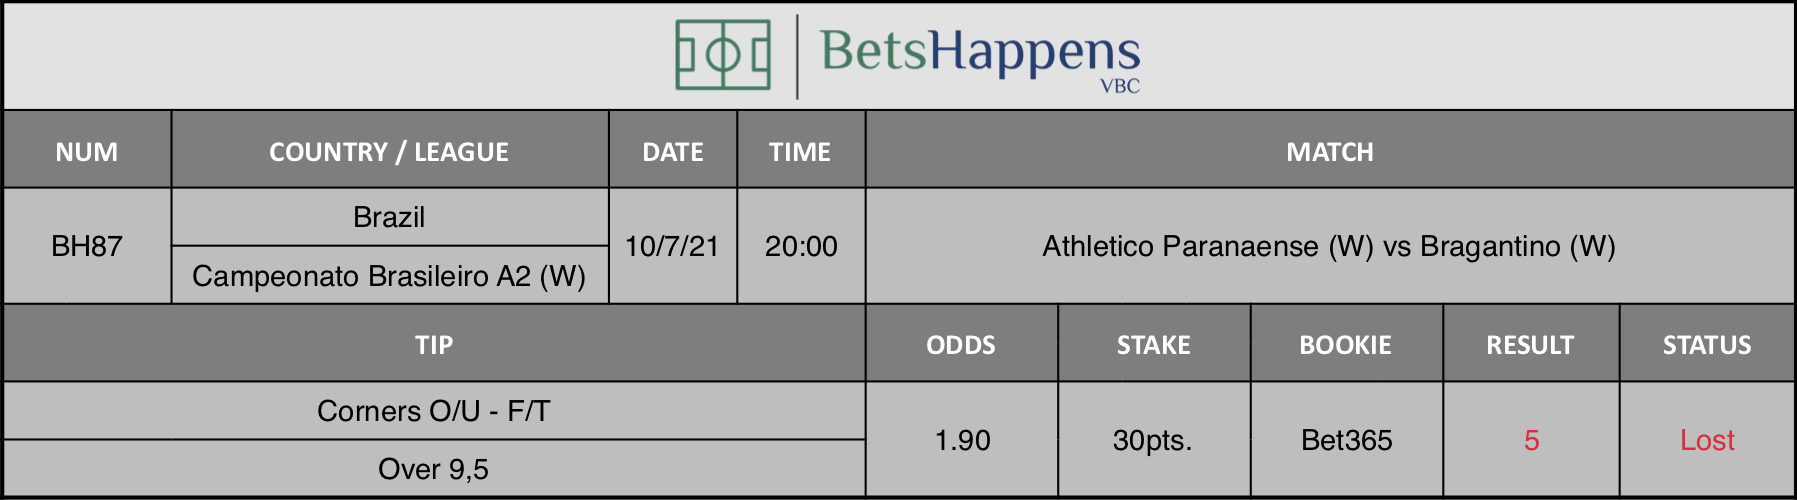 Results of our advice for the Athletico Paranaense (W) vs Bragantino (W) match in which Corners O/U F/T Over 9,5 is recommended.